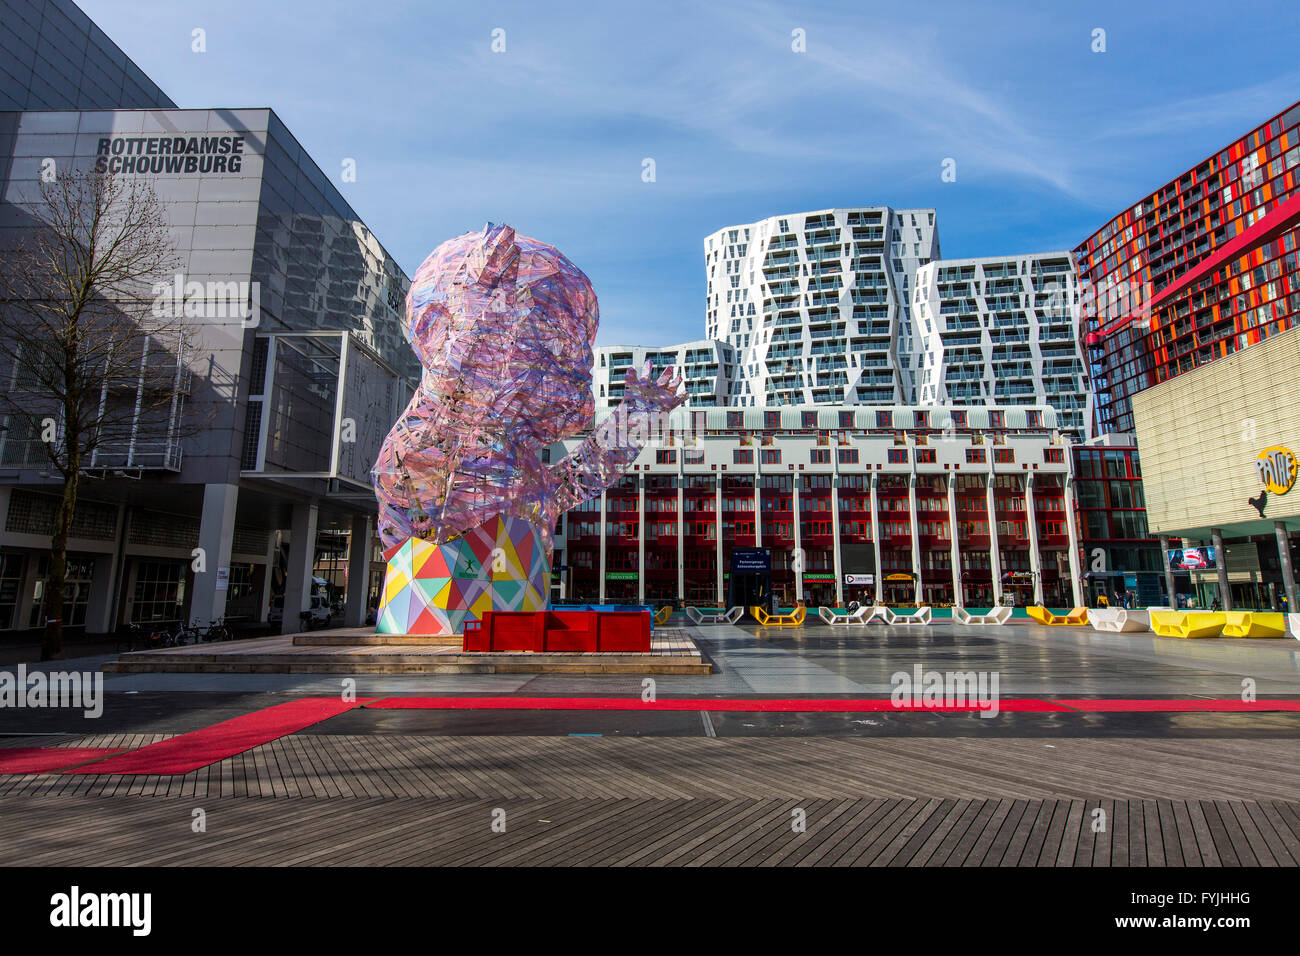 Downtown, Schouwburgplein, square in the city center, with various cultural institutions and art installations in - Stock Image